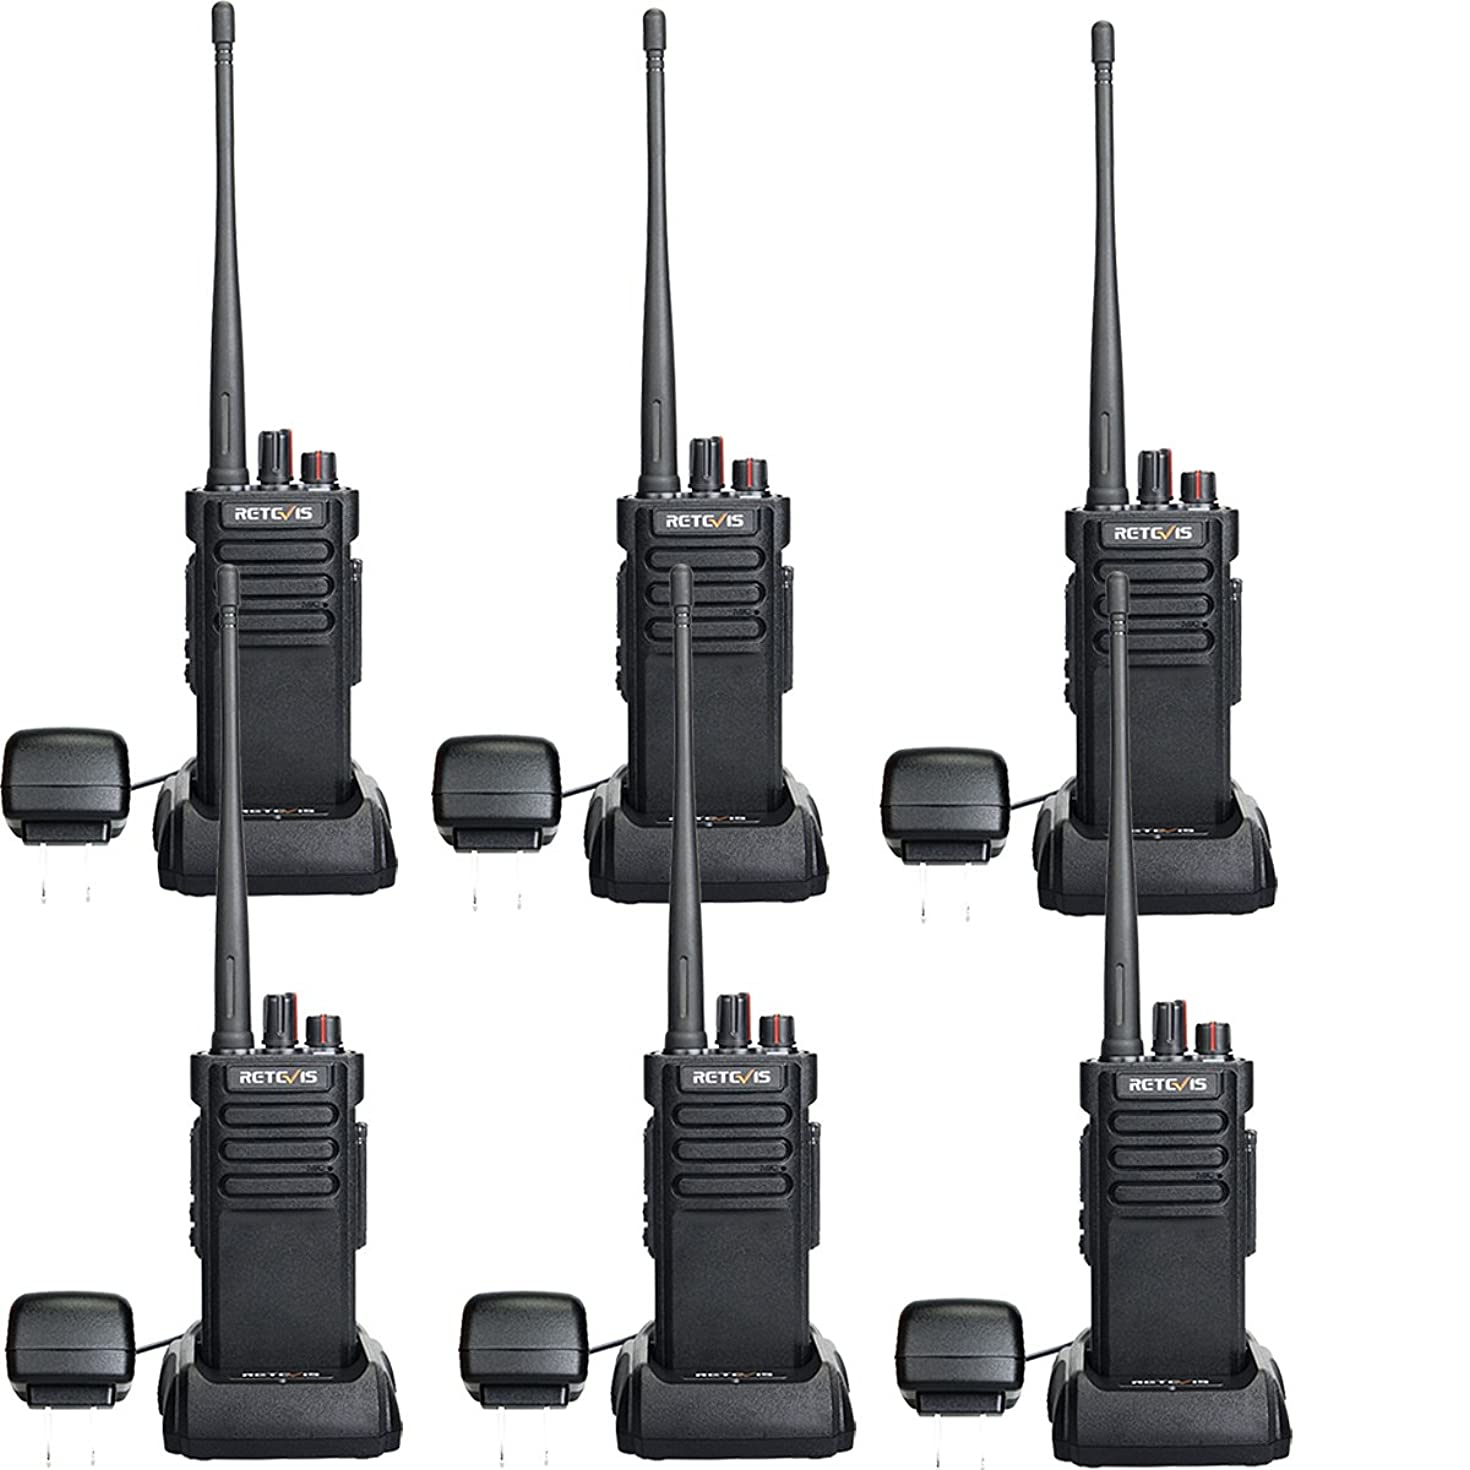 Retevis RT29 2 Way Radios Long Range 3200mAh 16 CH Lock VOX Rechargeable UHF Scrambler Alarm Security High Power Walkie Talkies with Super Clear Audio(6 Pack)